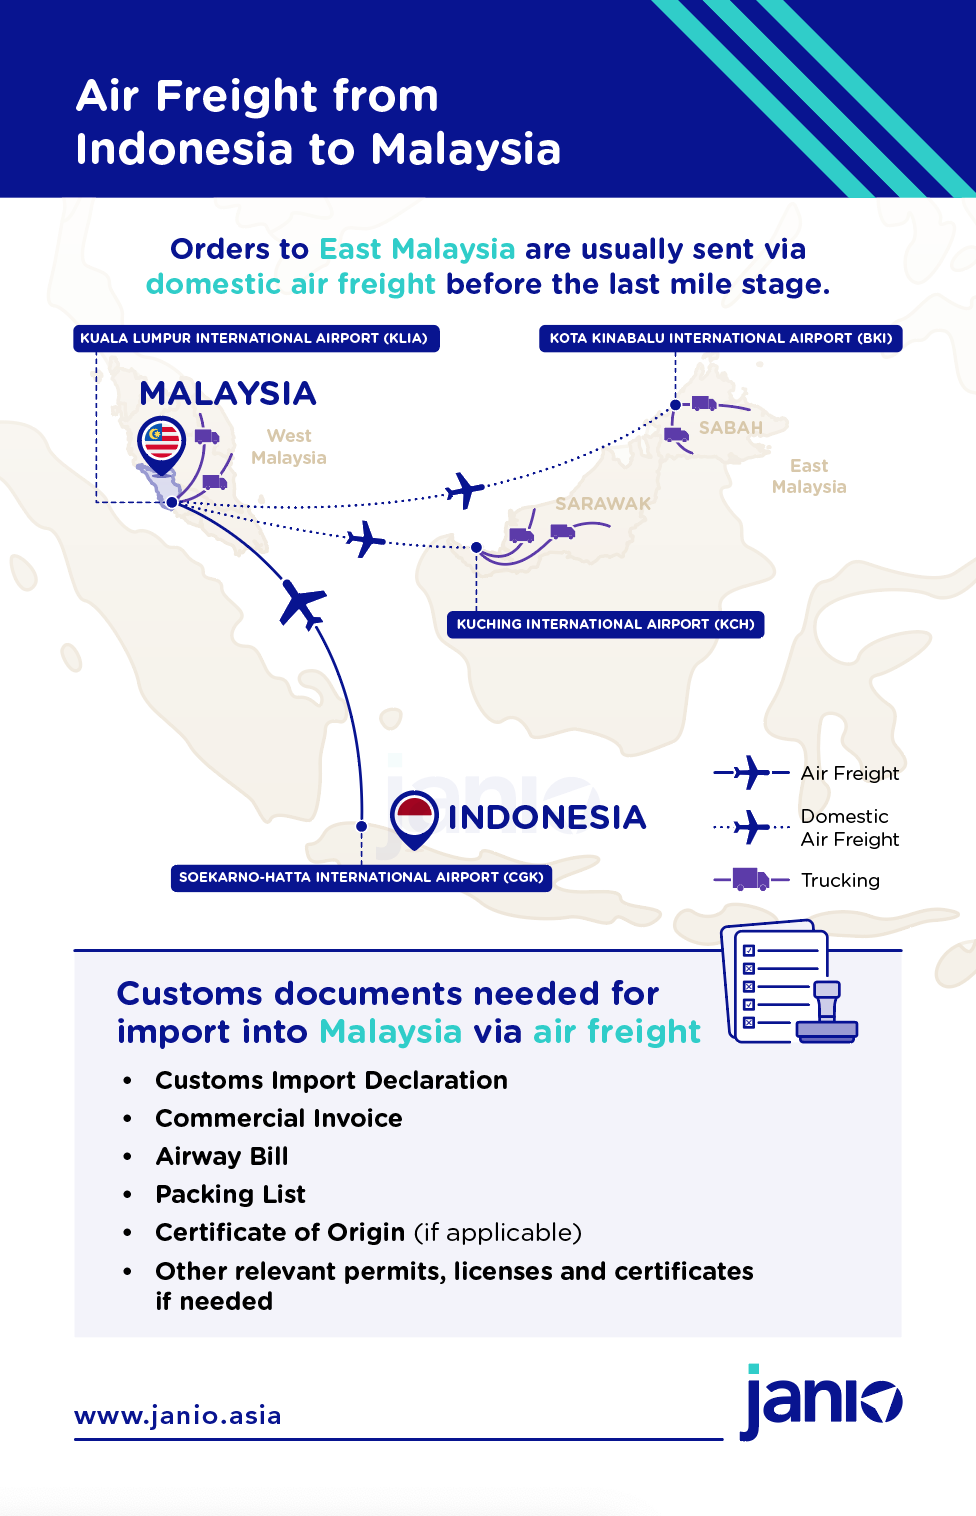 Infographic showing how air freight is done from Indonesia to Malaysia including the customs documents needed for import clearance into Malaysia